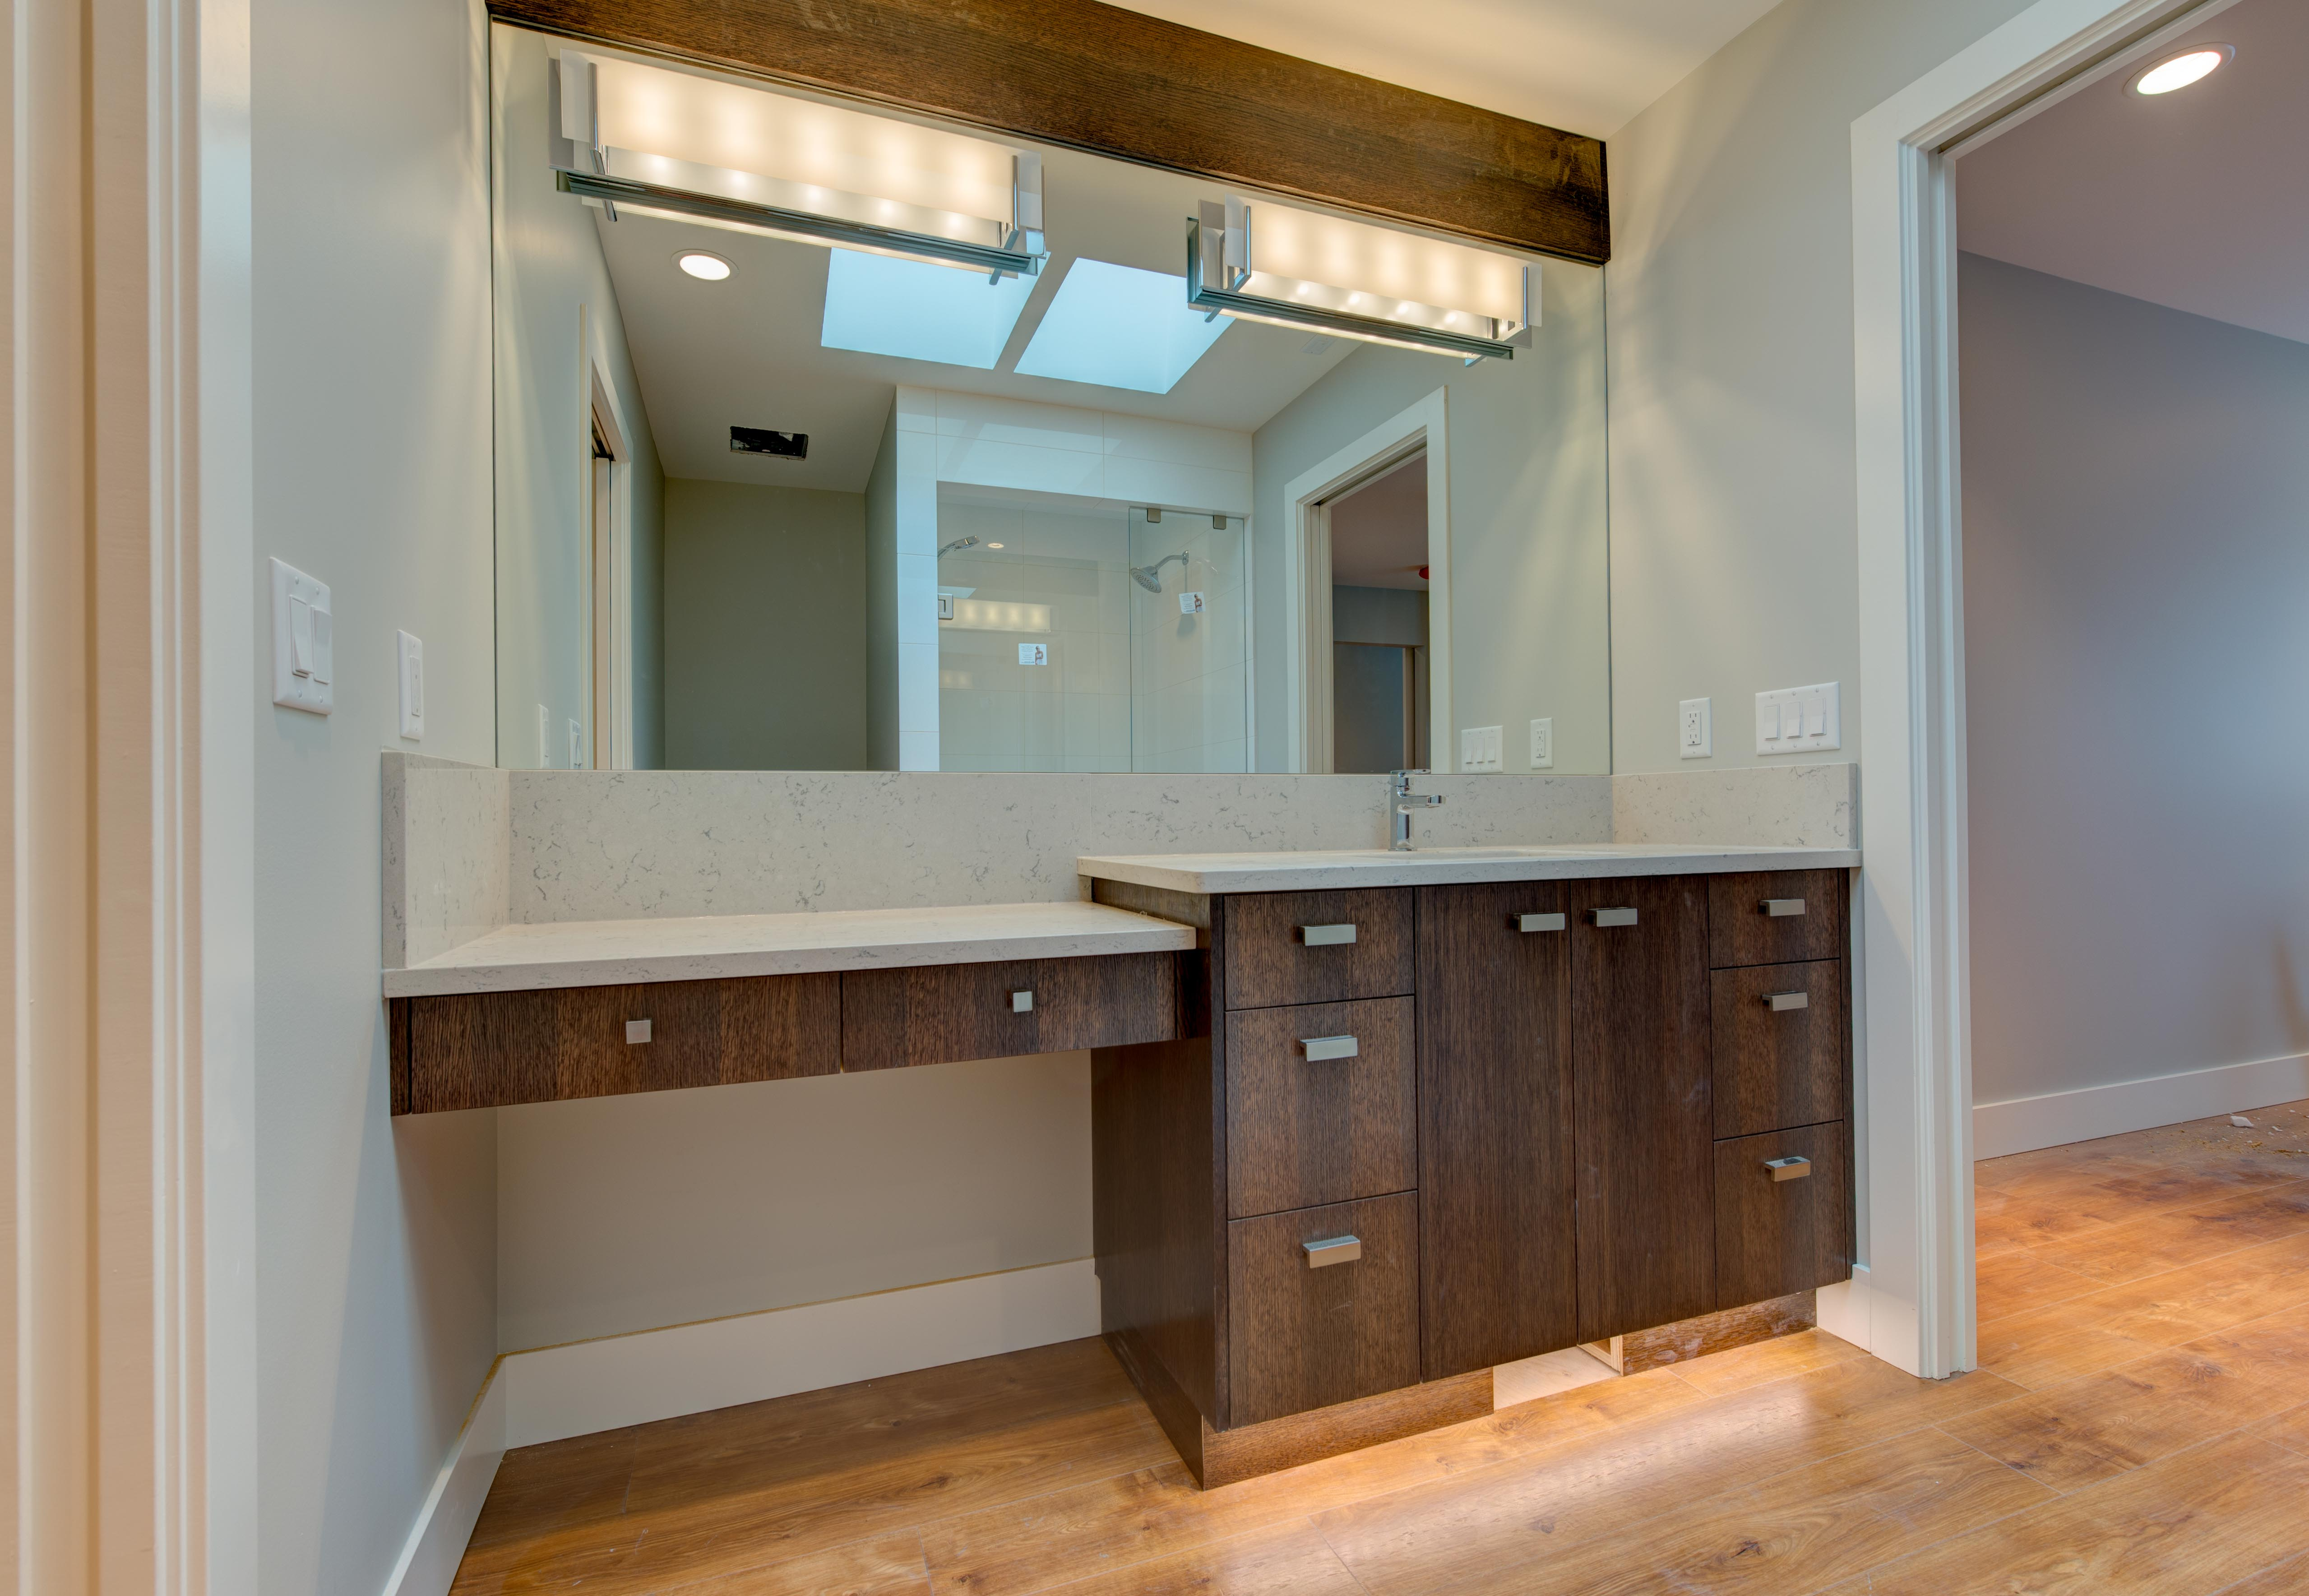 Bathroom vanity & cupboards